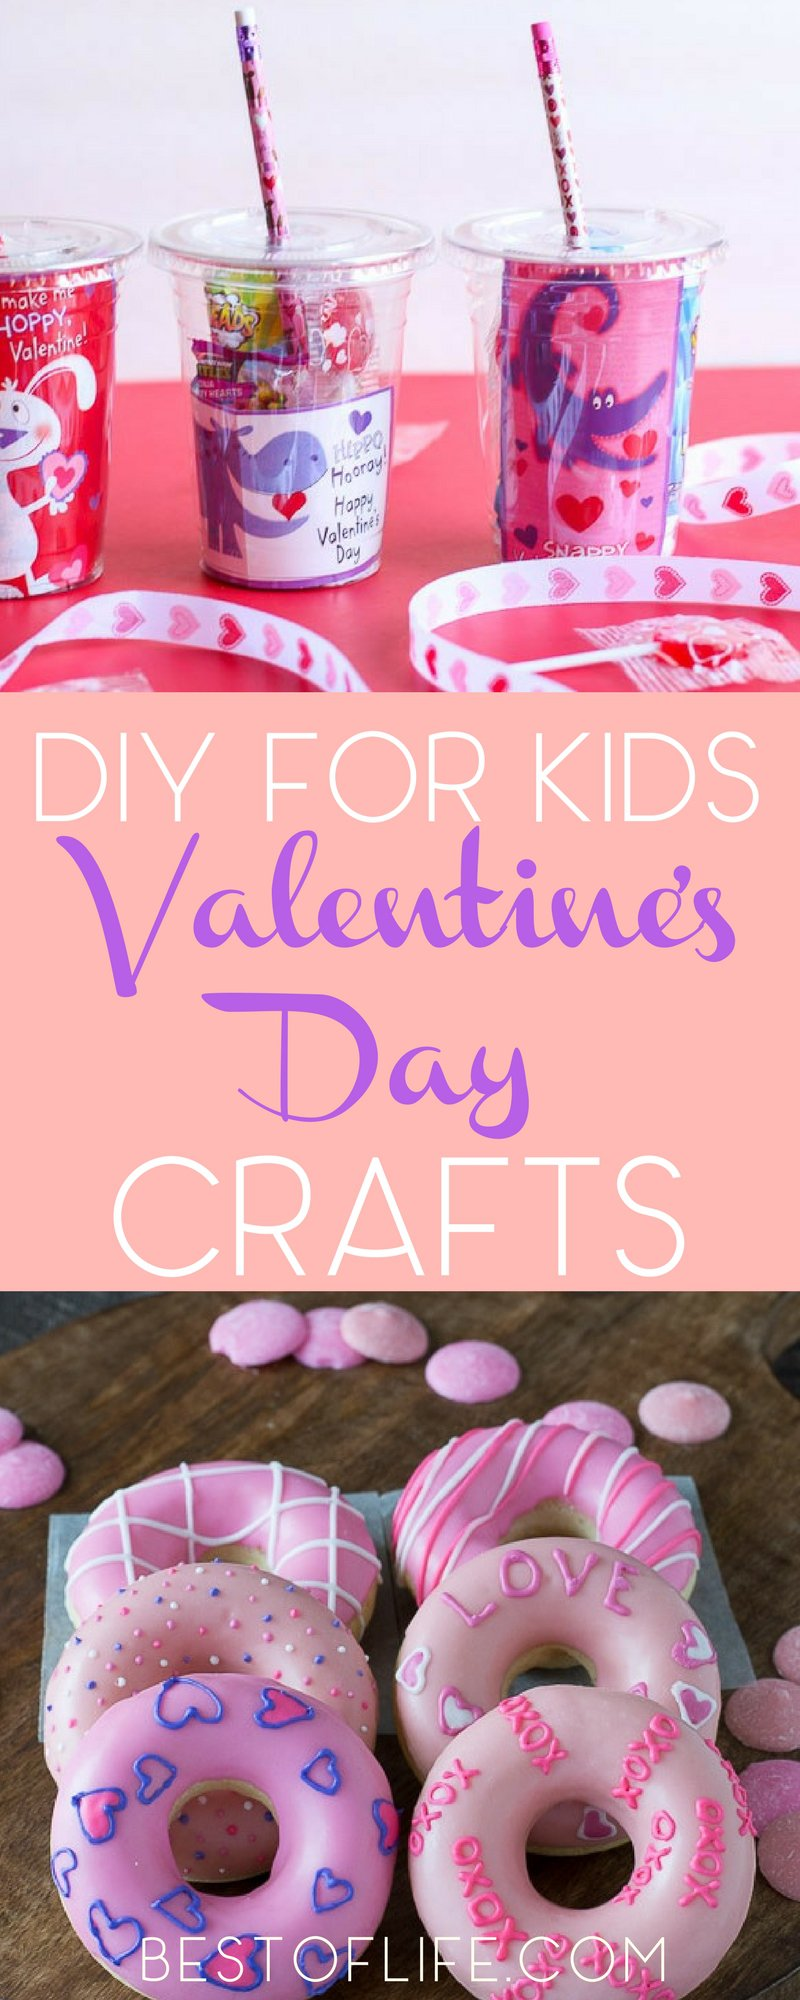 DIY Valentines Day crafts could help parents save money on cards and more during the celebration of love, friendship, and companionship. DIY Crafts | Holiday DIY Crafts | Best DIY Holiday Crafts | Valentines Day Craft Ideas | Valentines Day Crafts for Kids | Best Valentine Craft Ideas